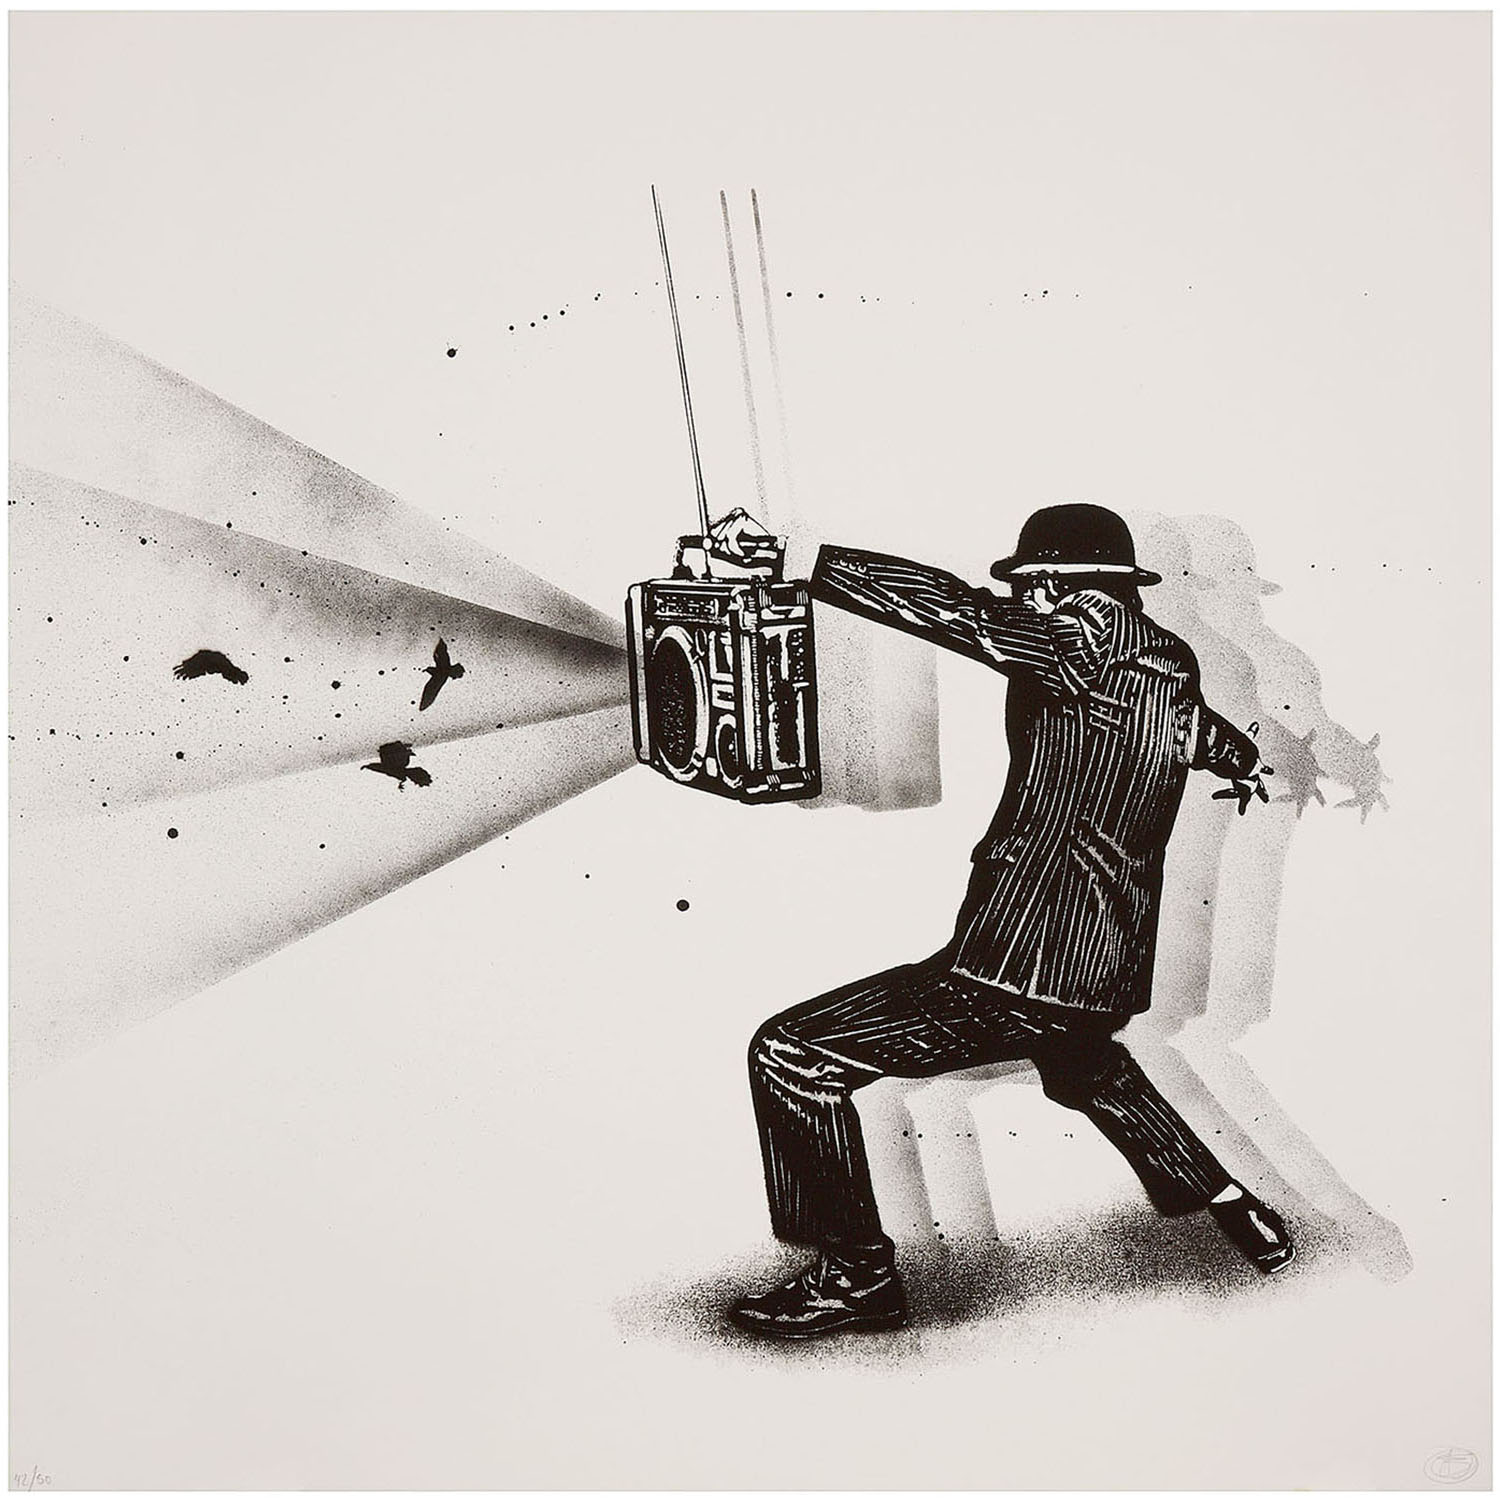 Nick Walker-Ghetto Blaster Vandal-